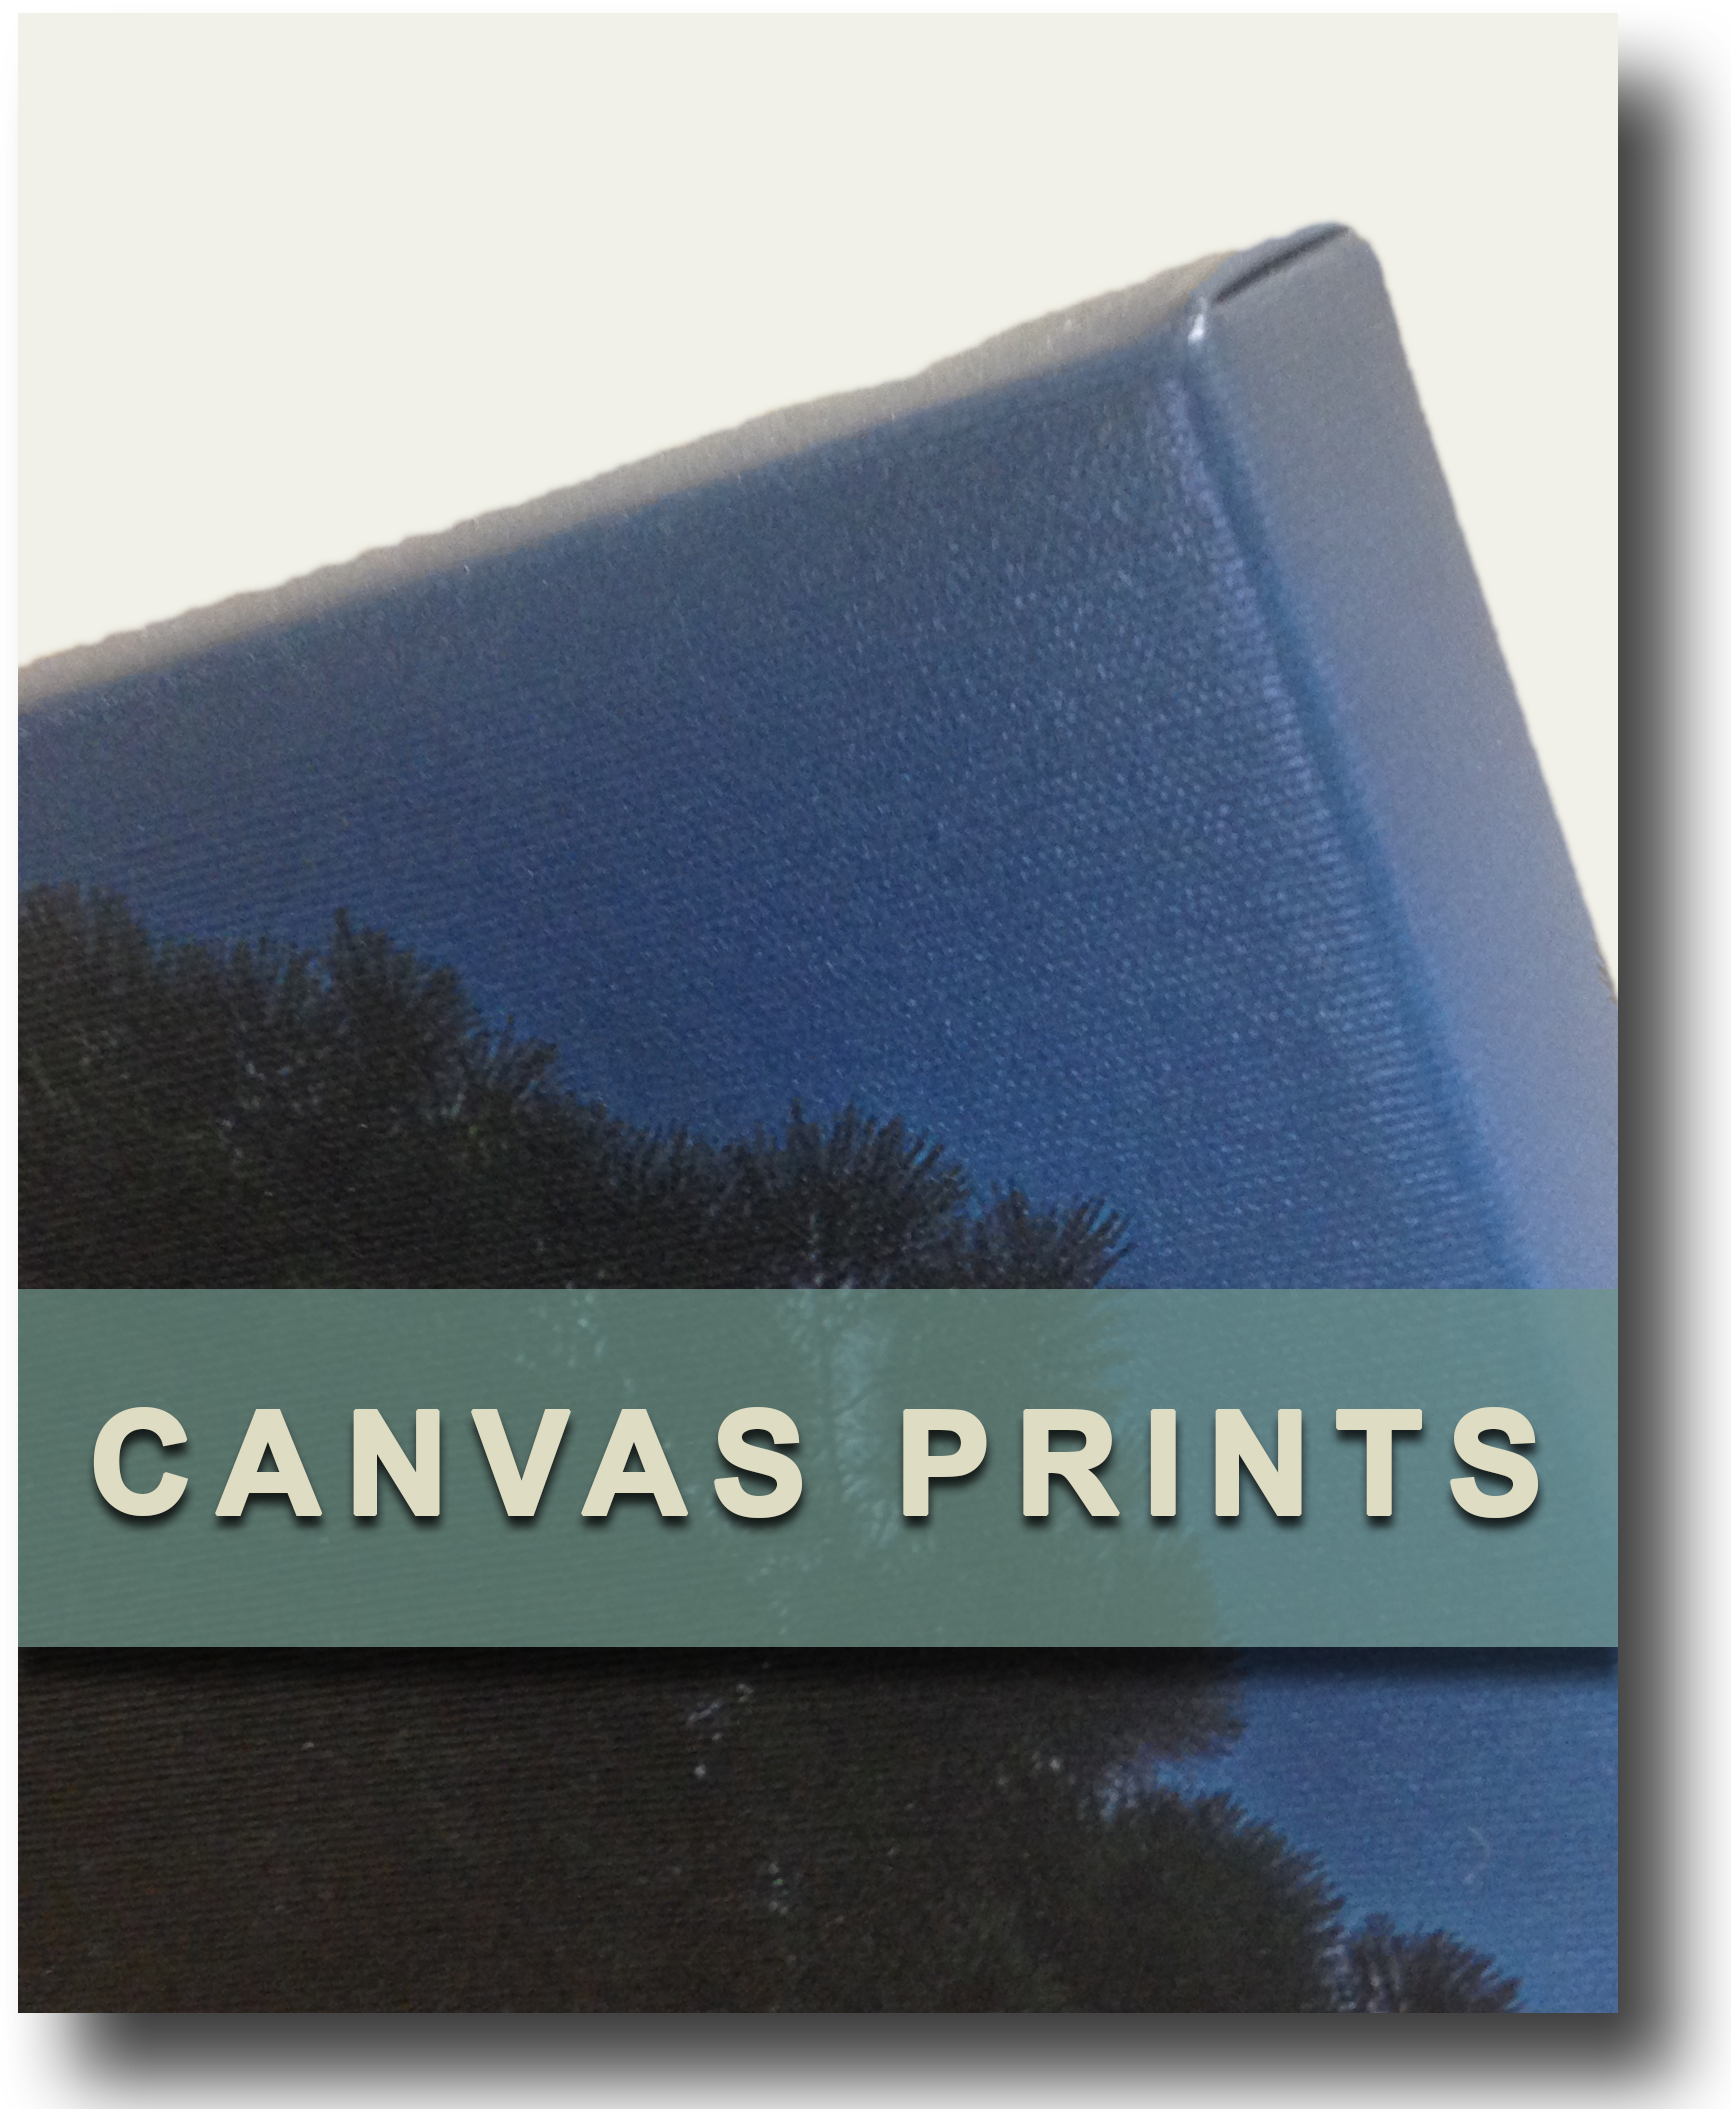 CanvasPrints.png